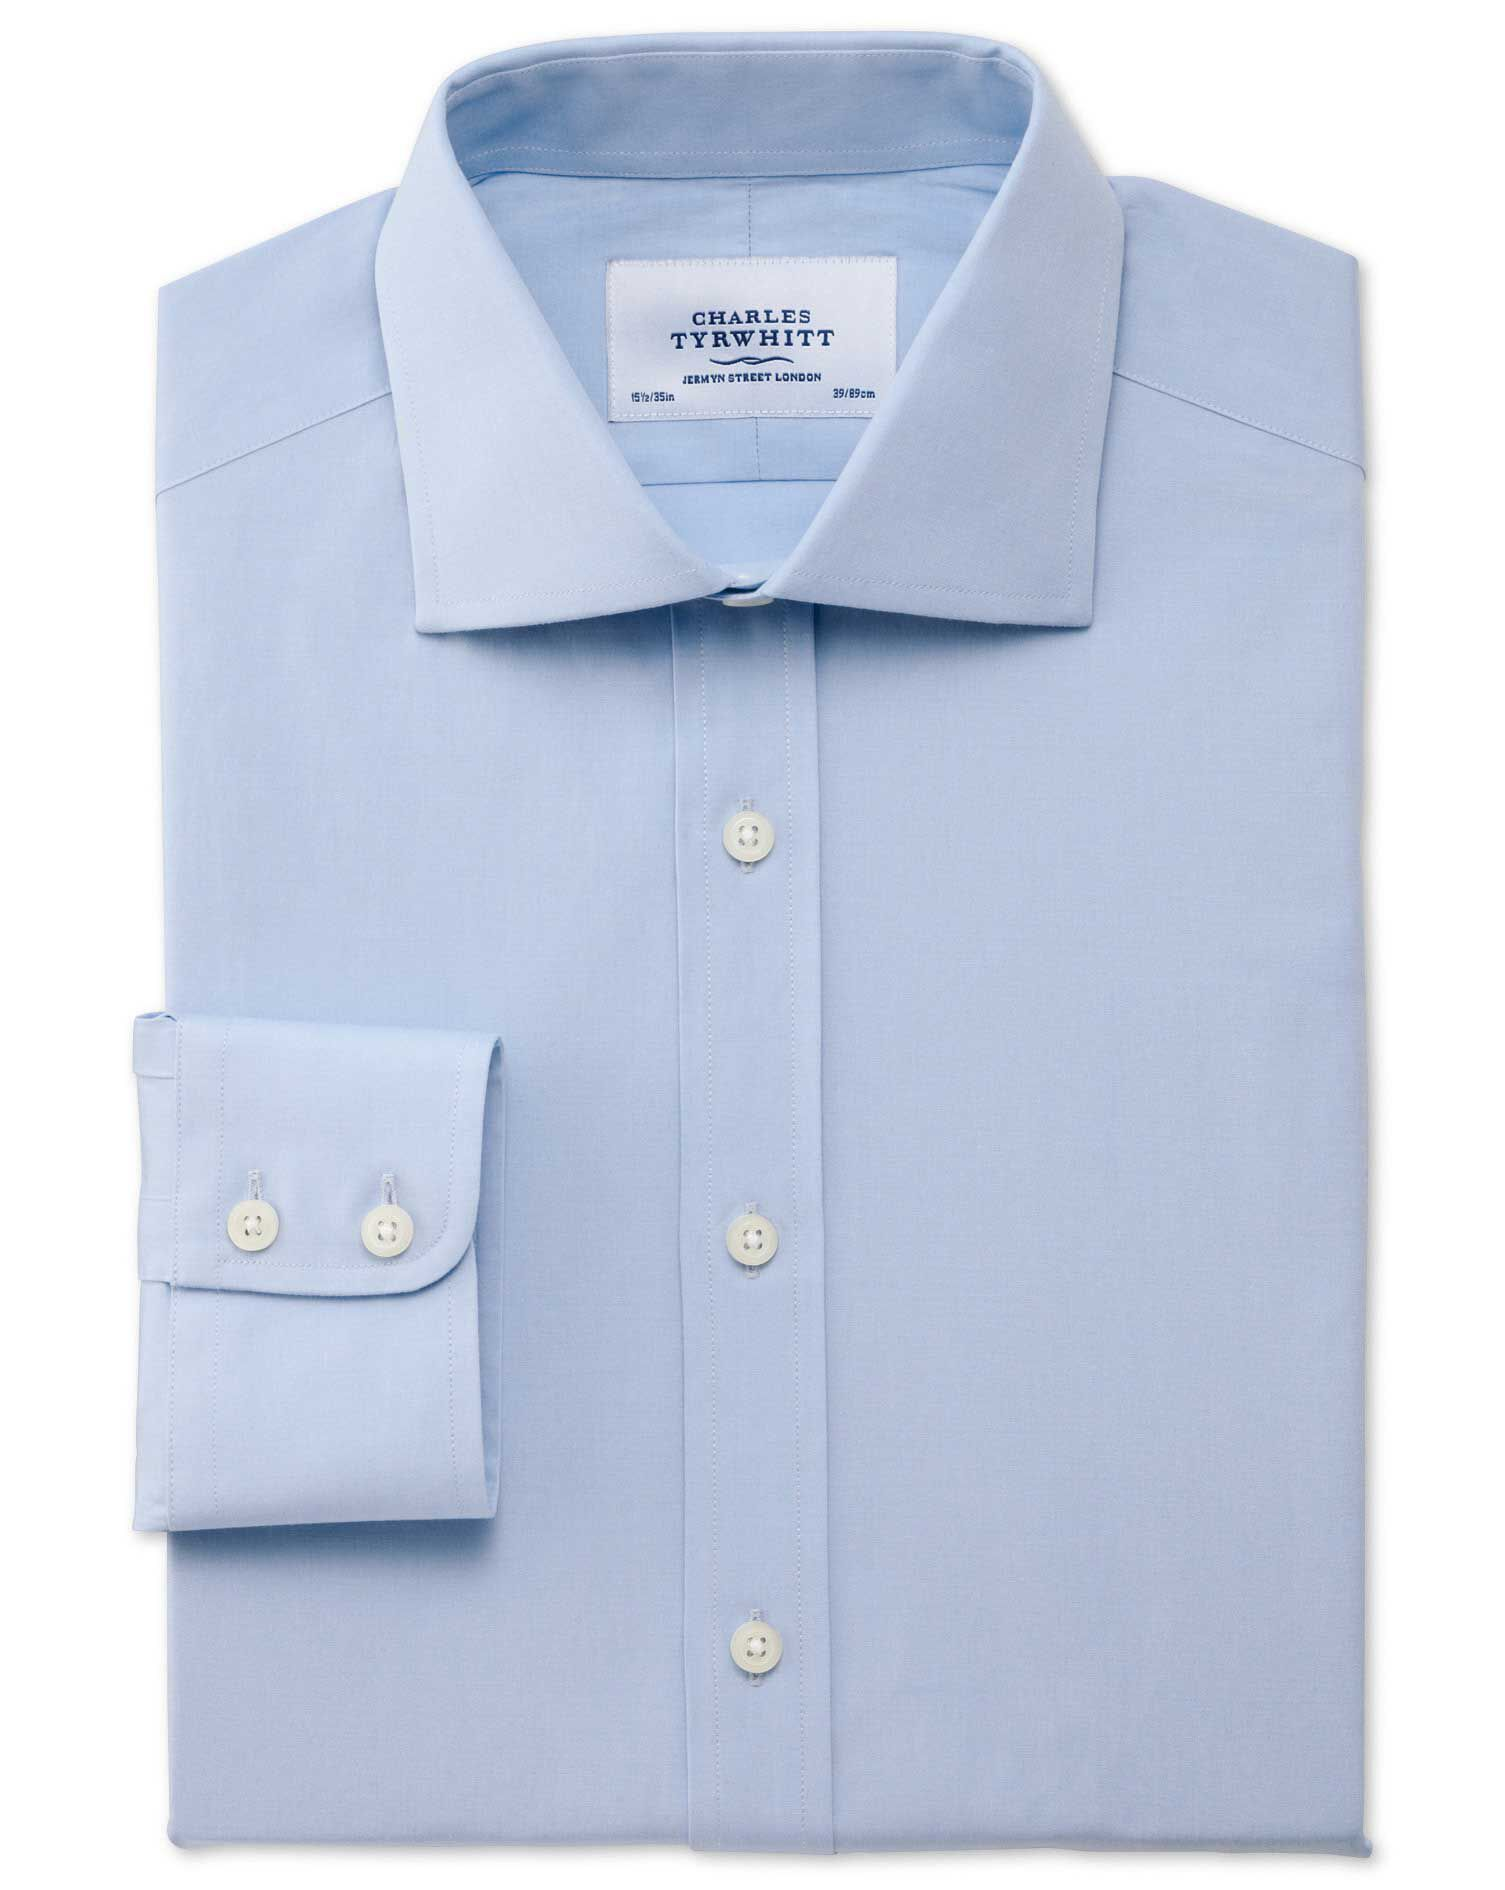 Extra Slim Fit Semi-Cutaway Collar Stretch Sky Blue Cotton Formal Shirt Single Cuff Size 16.5/33 by